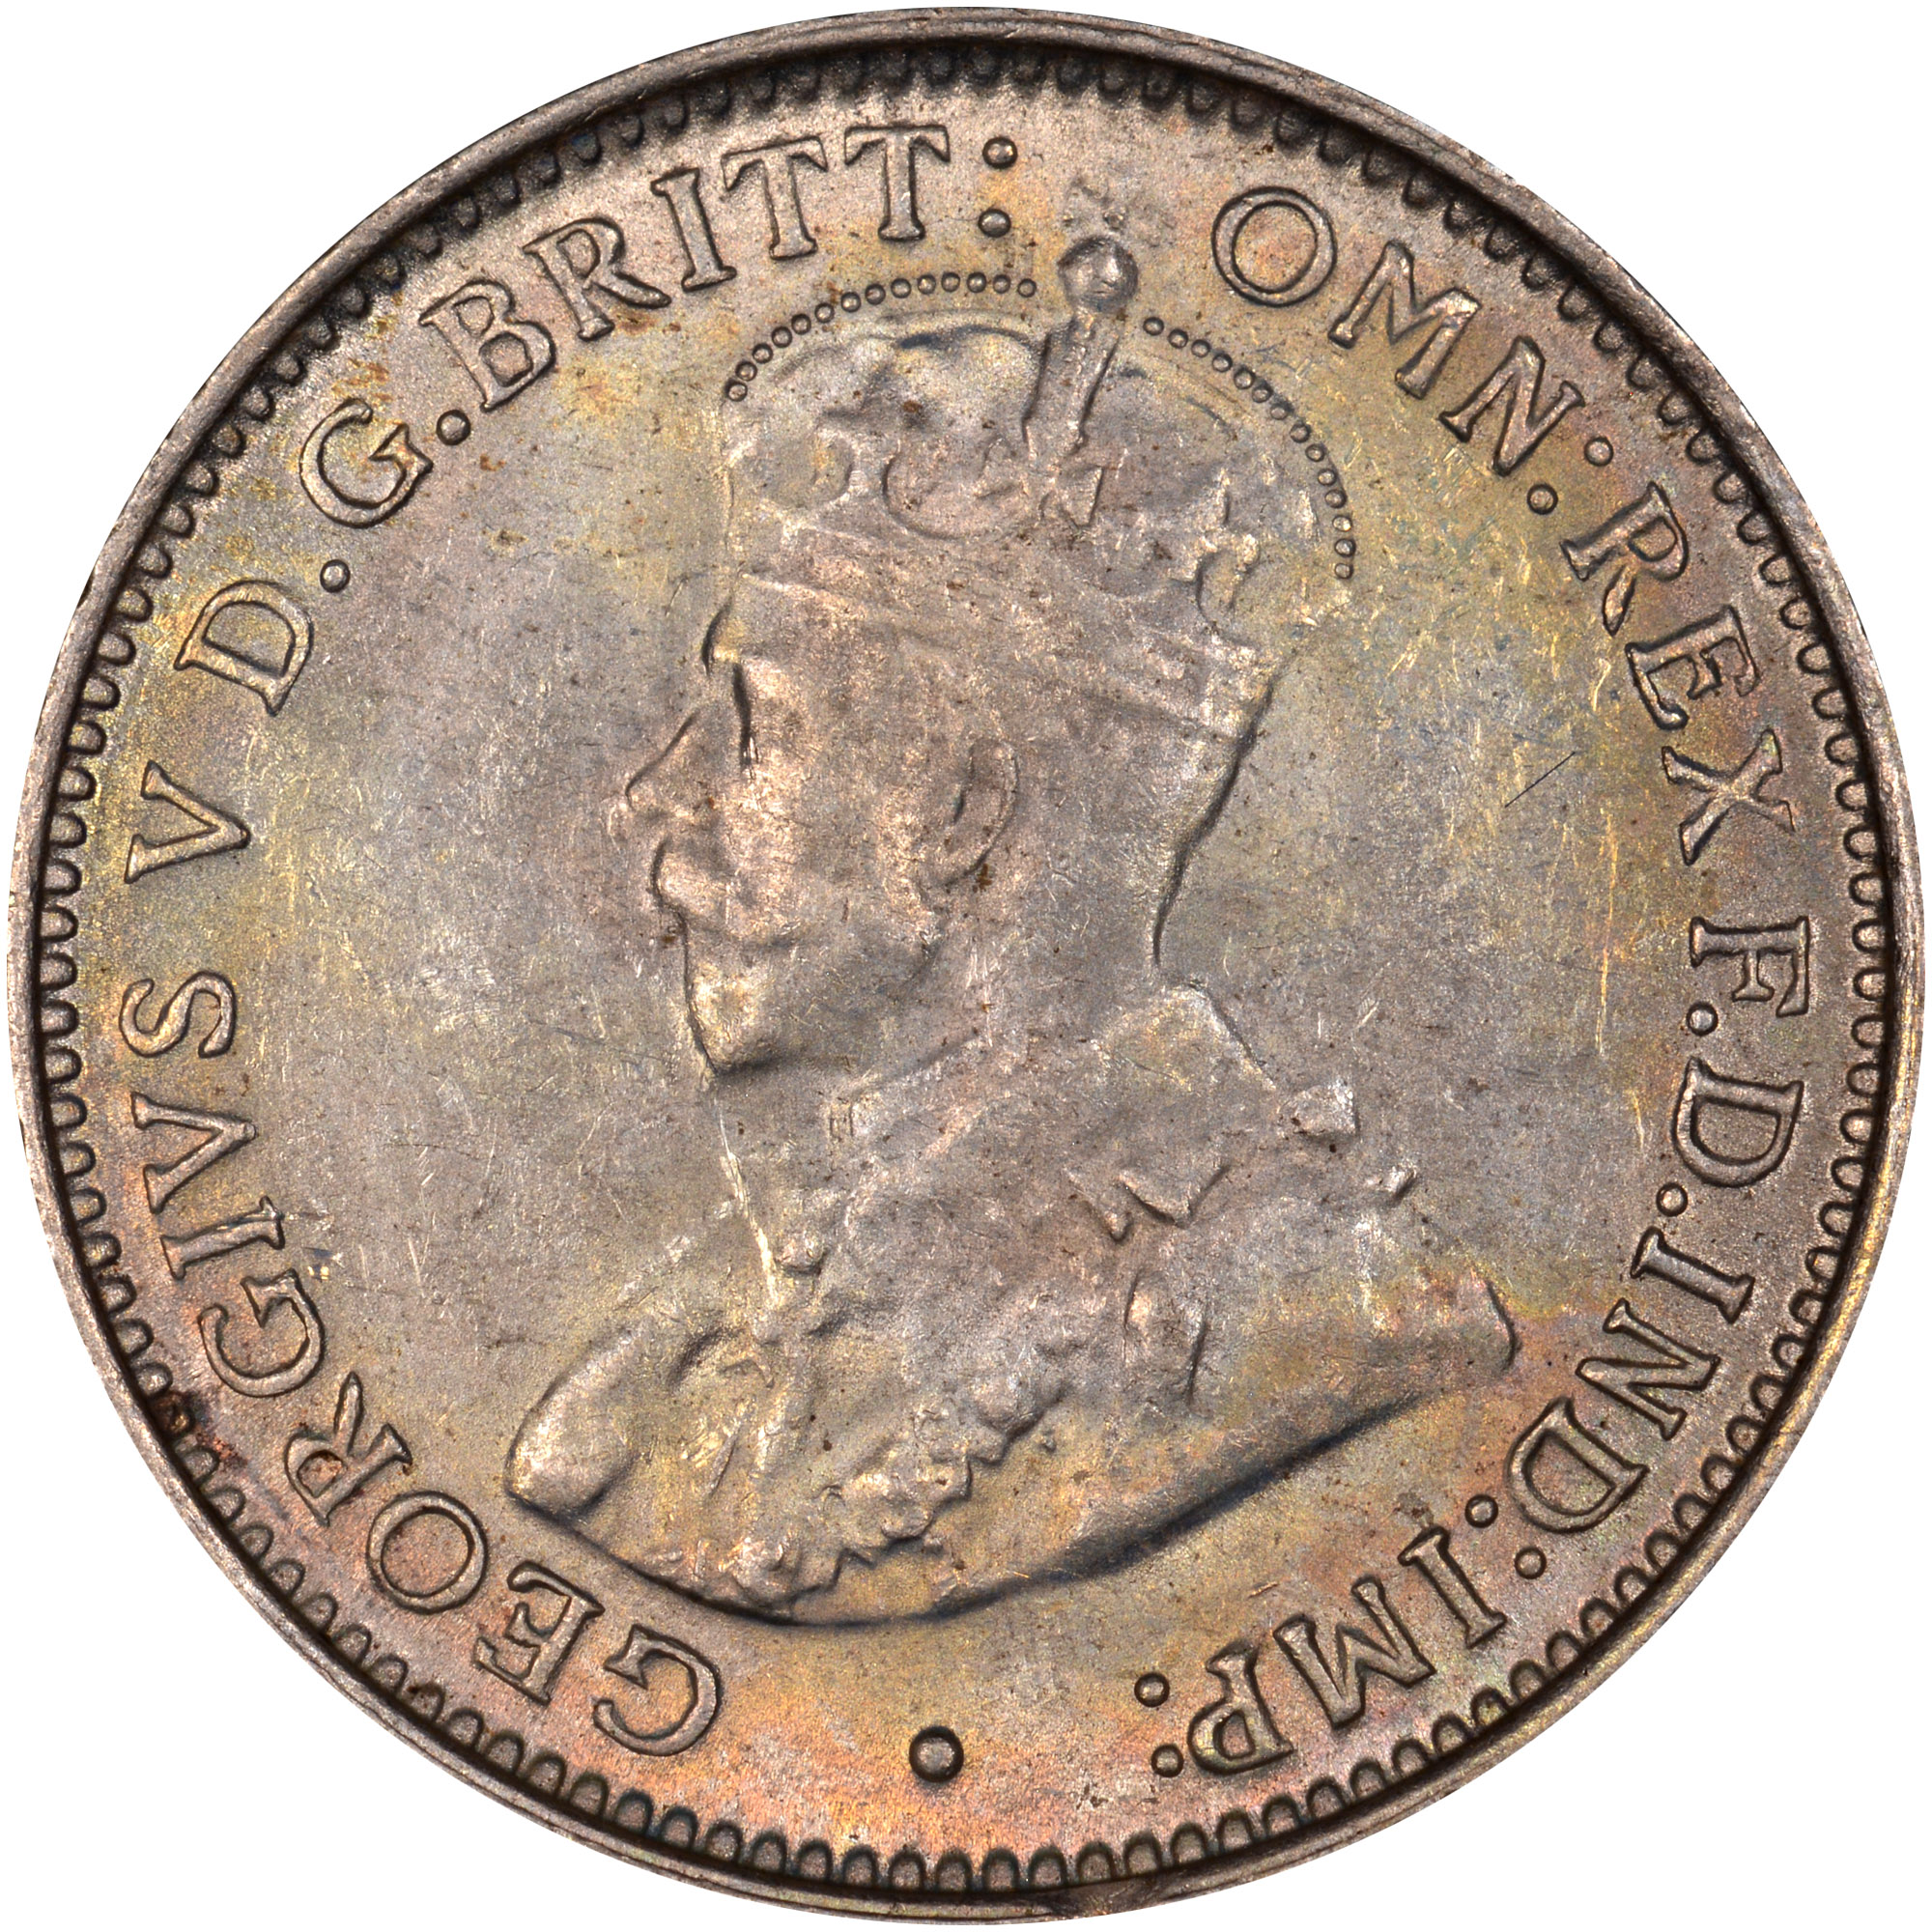 1920 British West Africa 3 Pence obverse